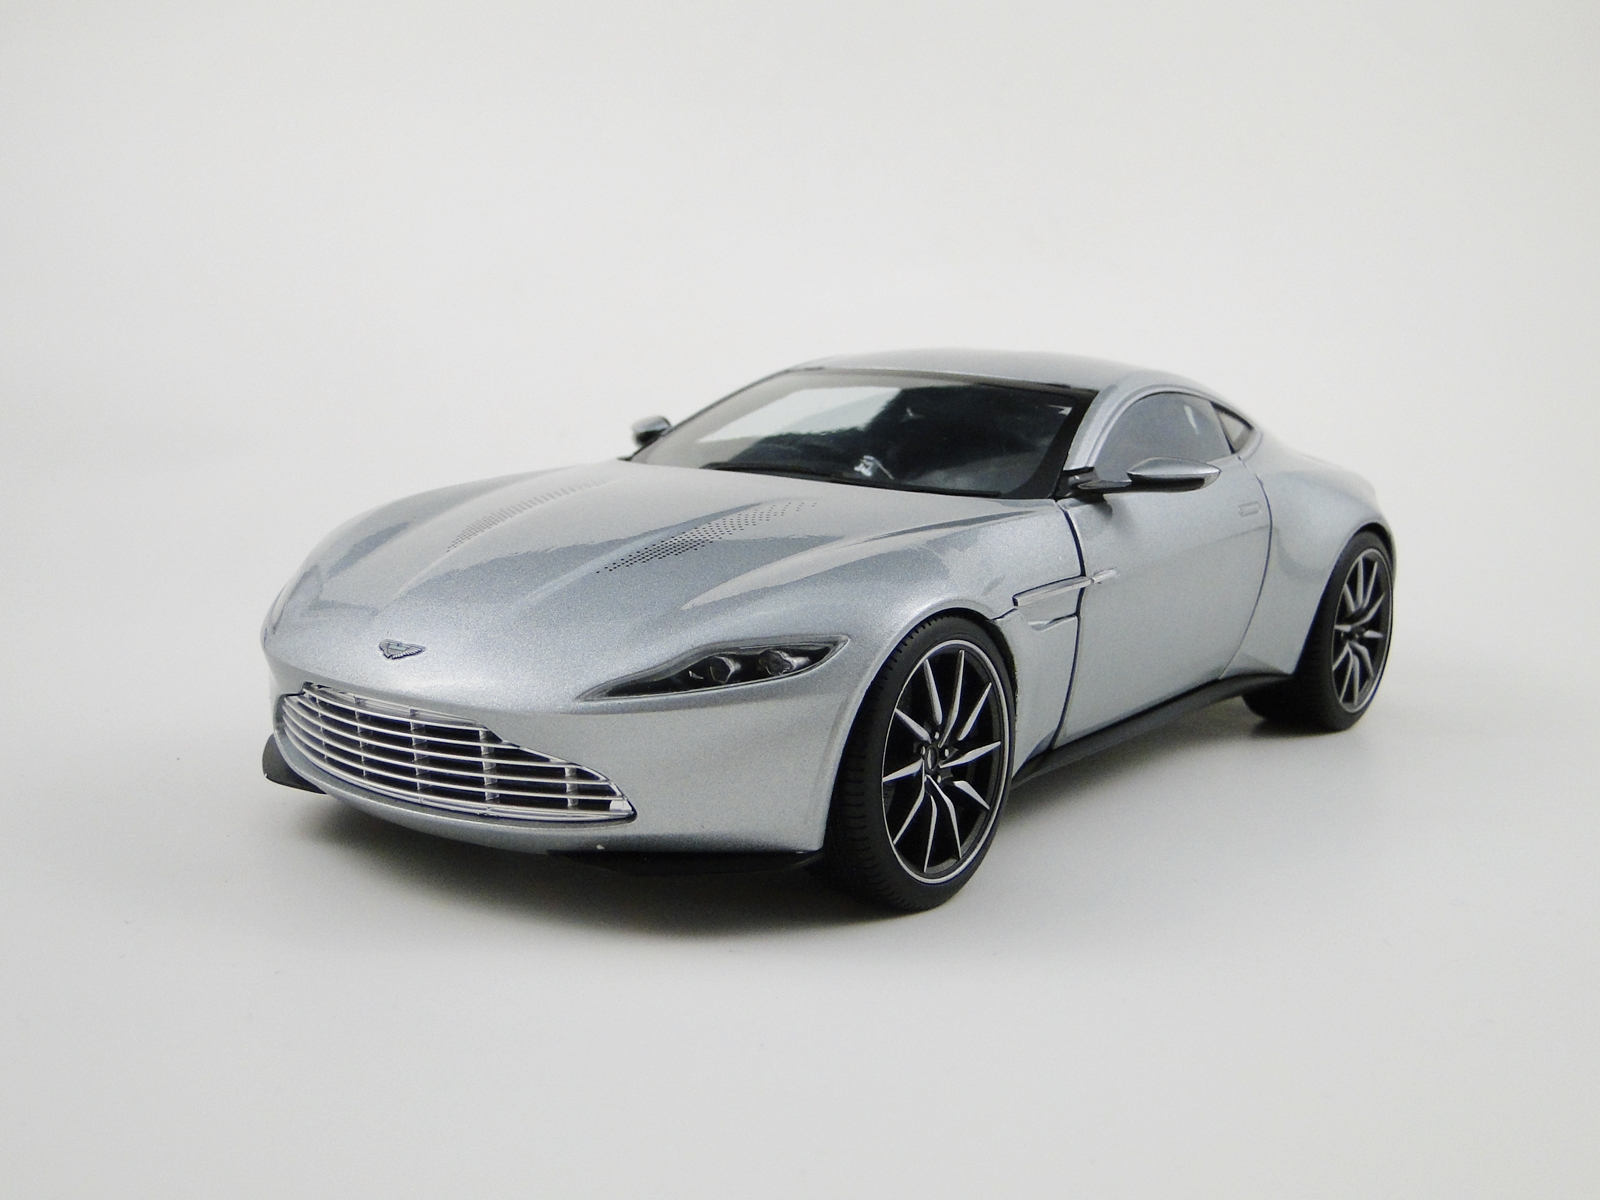 "aston martin db10 ""spectre"" - modelcarforum"